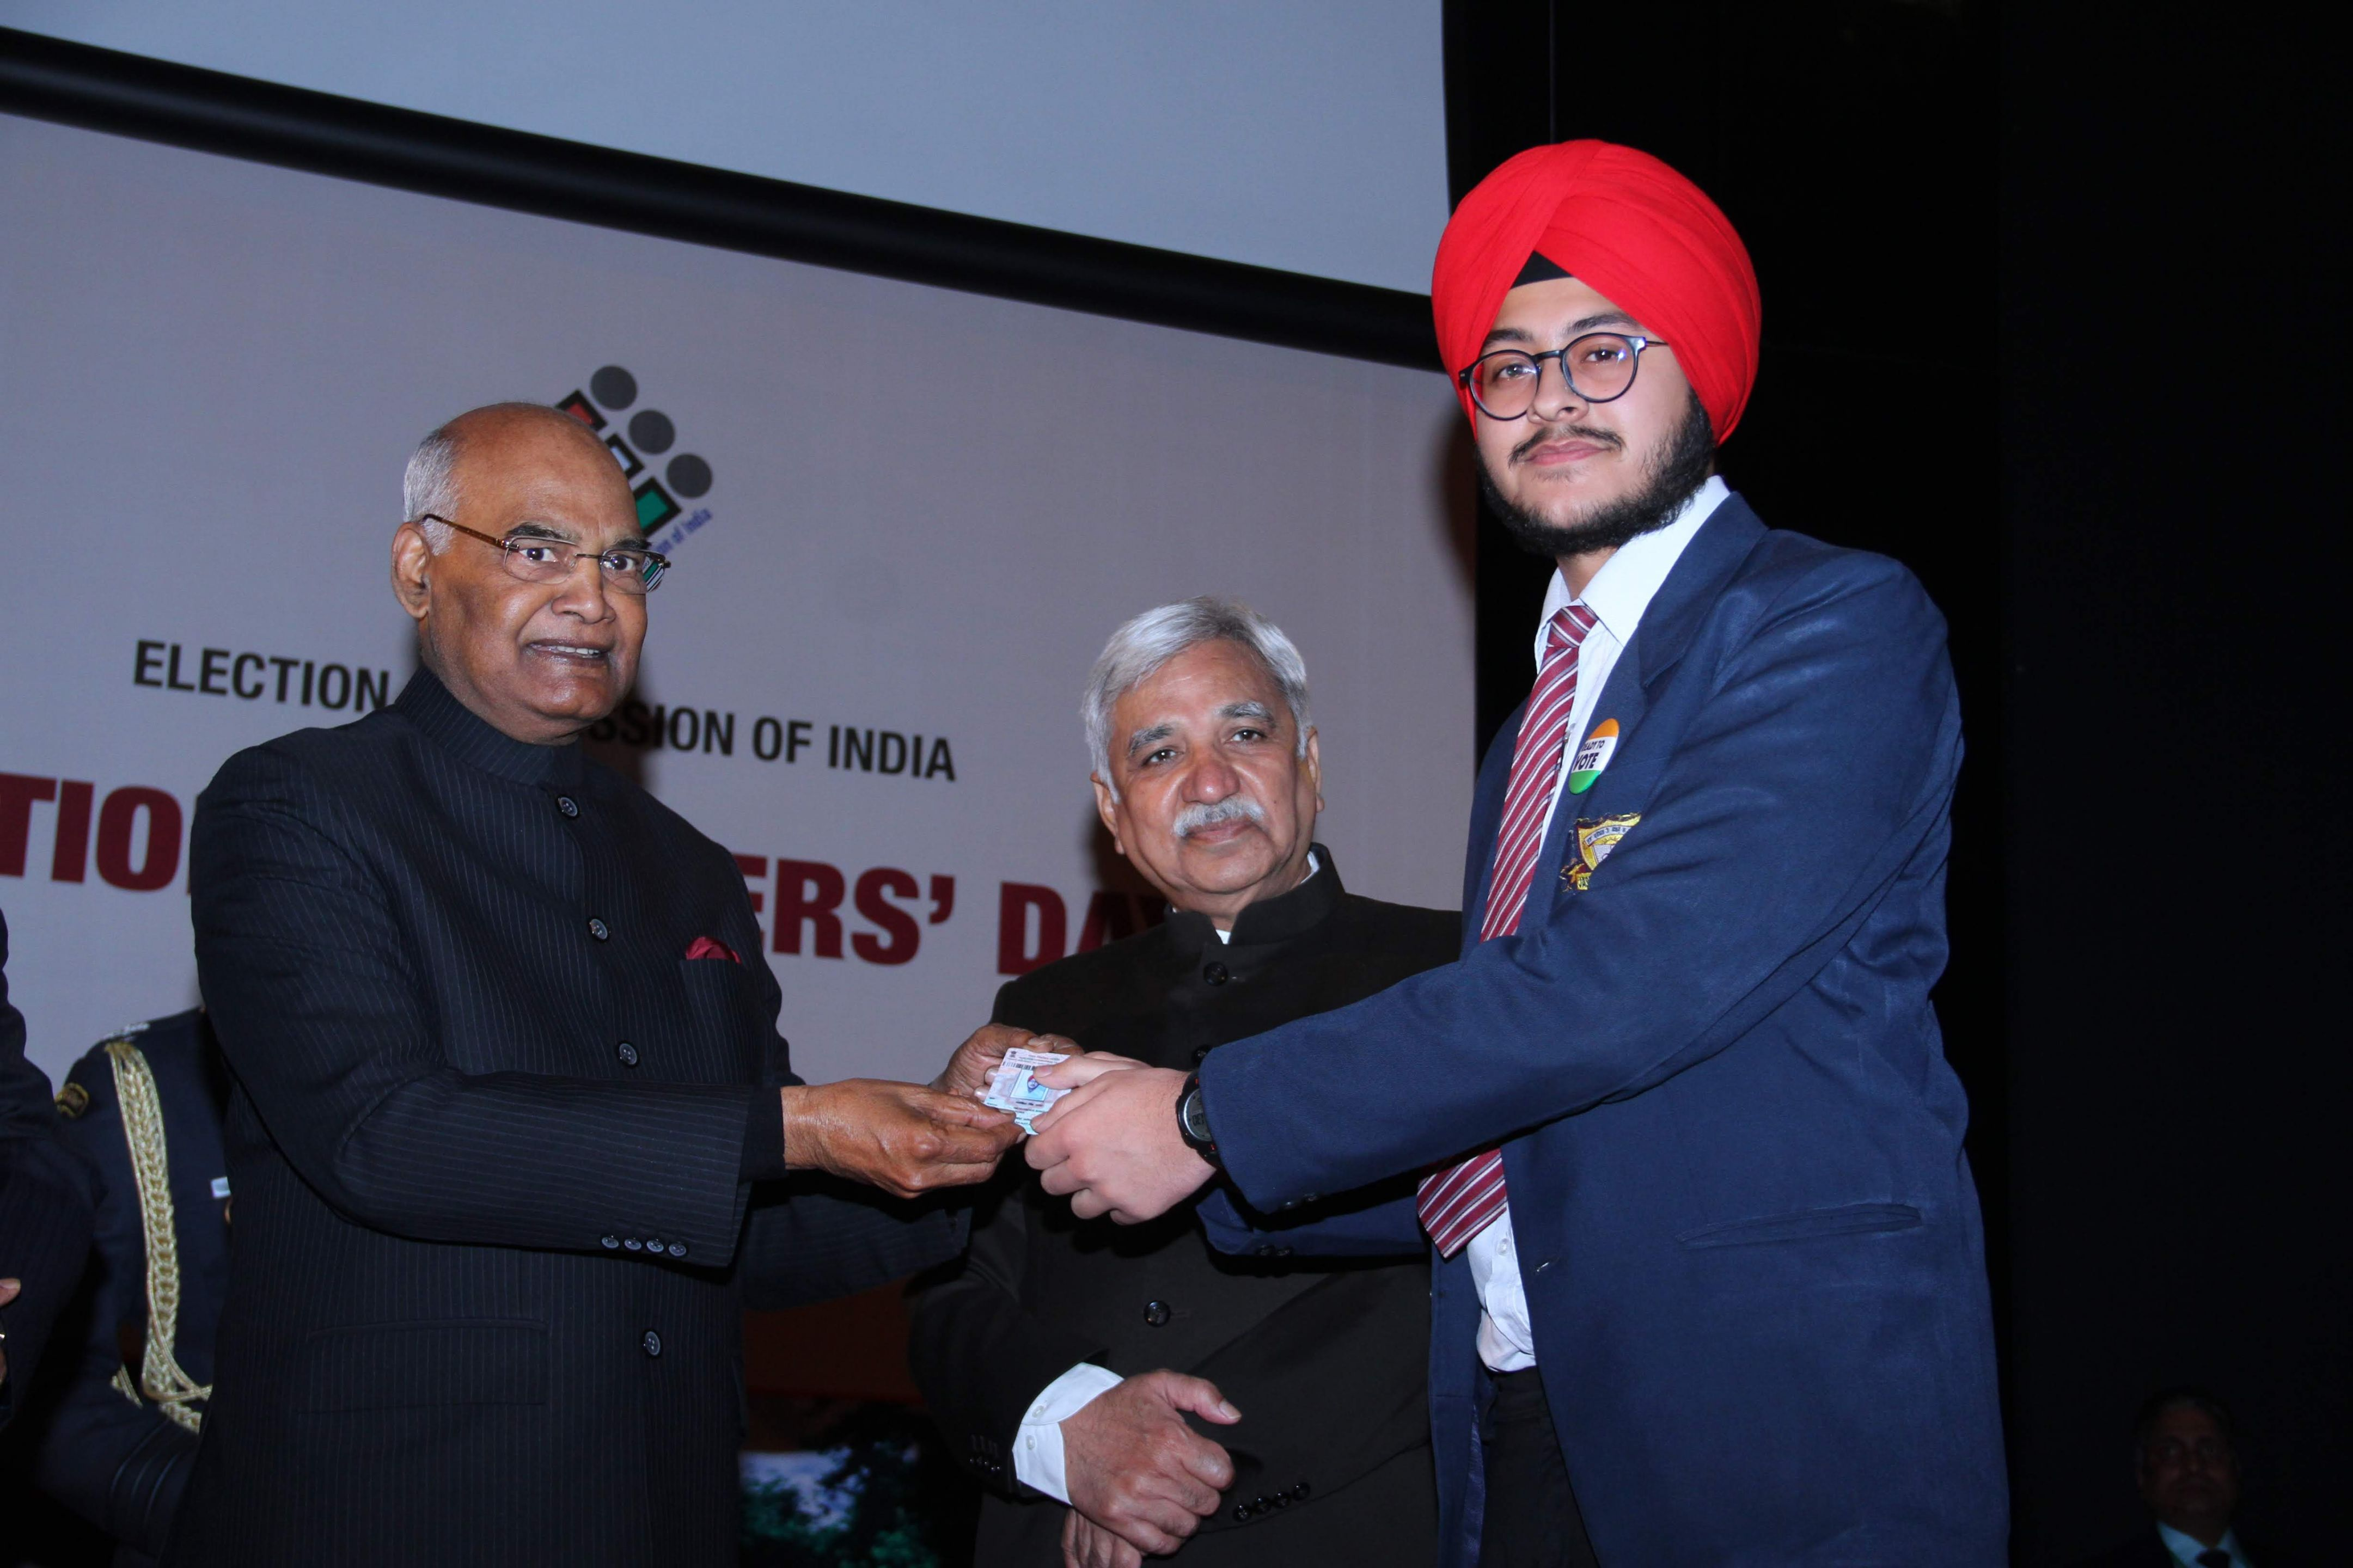 Hon'ble president felicitating a newly eligible voter from Delhi with EPIC